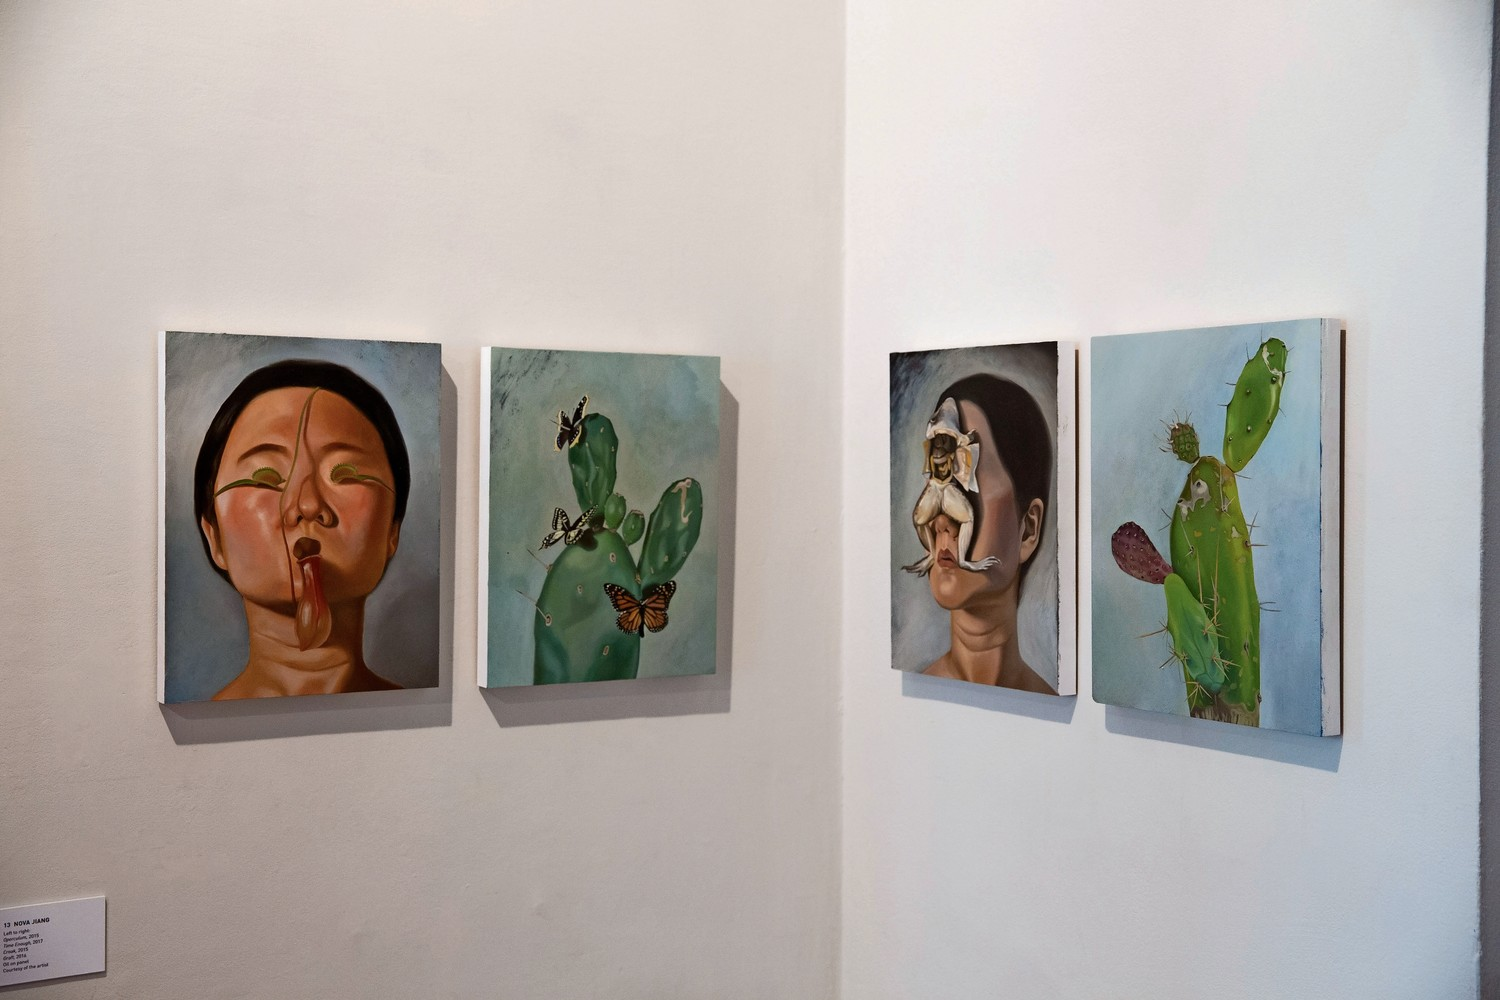 A series of four paintings by artist Nova Jiang are exhibited in the Glyndor Gallery at Wave Hill. The current show, 'Call & Response,' celebrates the 10th anniversary of the Sunroom Project Space where emerging artists in the New York area get a chance to explore Wave Hill through their work.